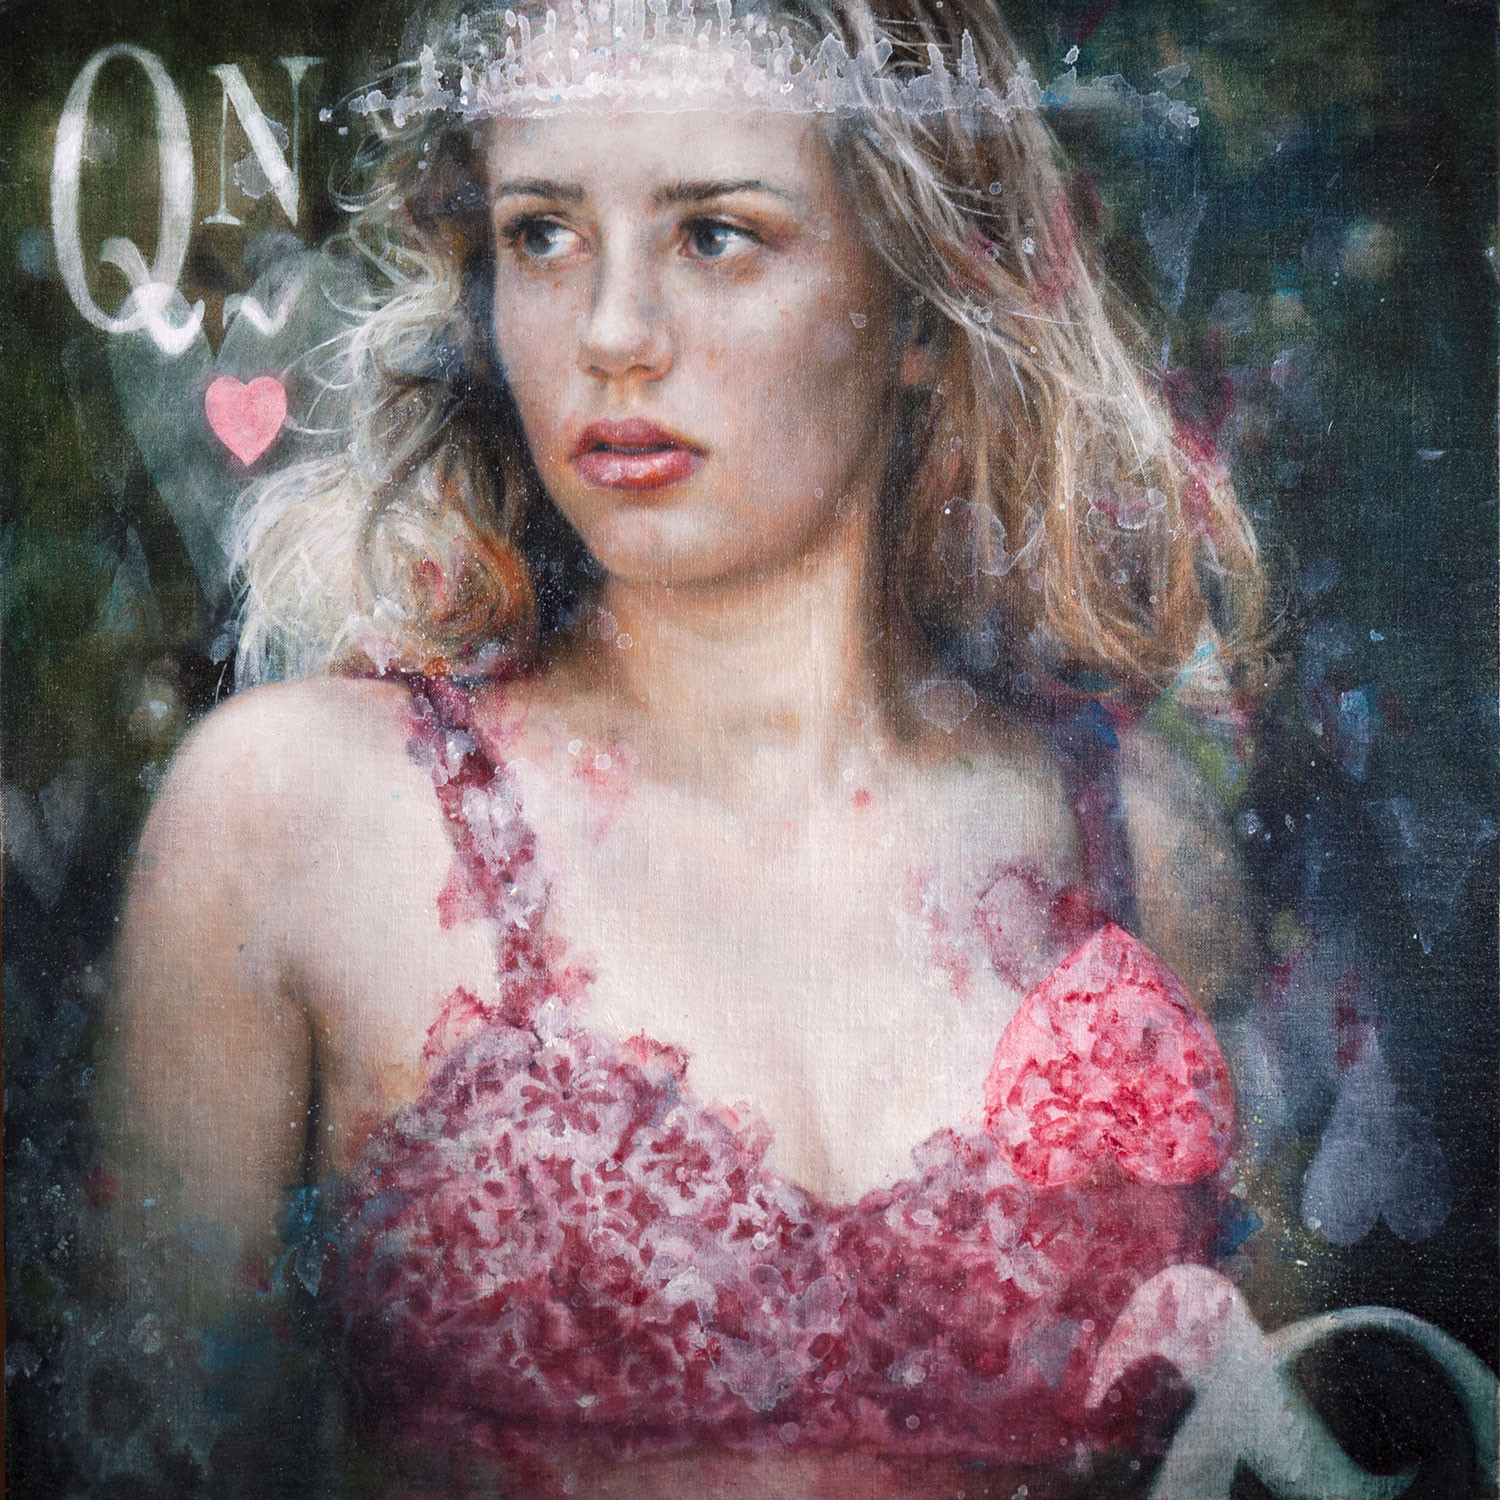 Stratton_Queen-of-Hearts_16x16-inches_Oil-on-Linen-mounted-to-Panel_web.jpg